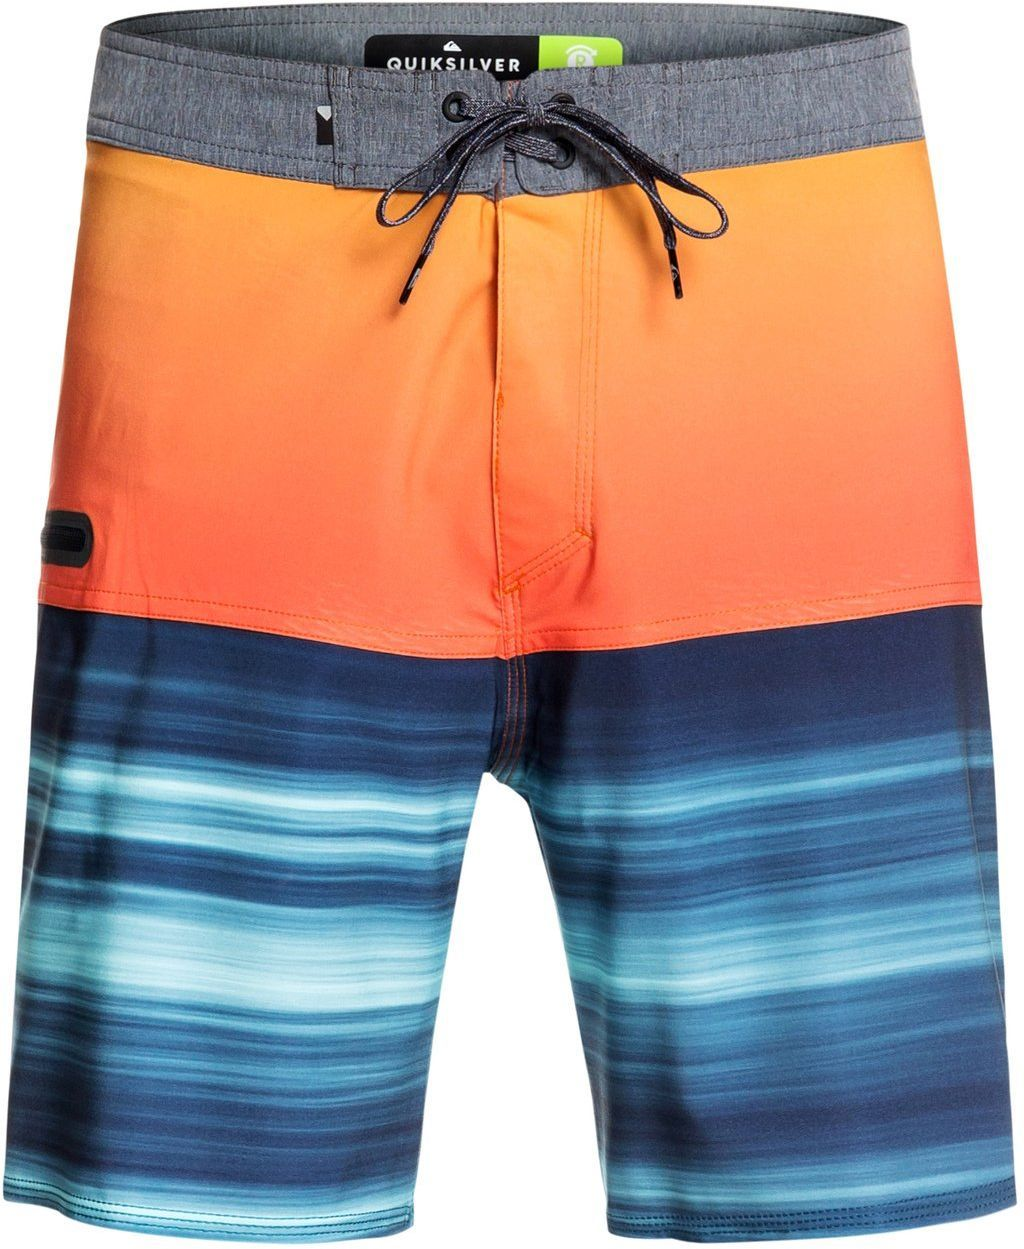 szorty kąpielowe mięske QUIKSILVER HIGHLINE HOLD DOWN 18 Tiger Orange - NME6